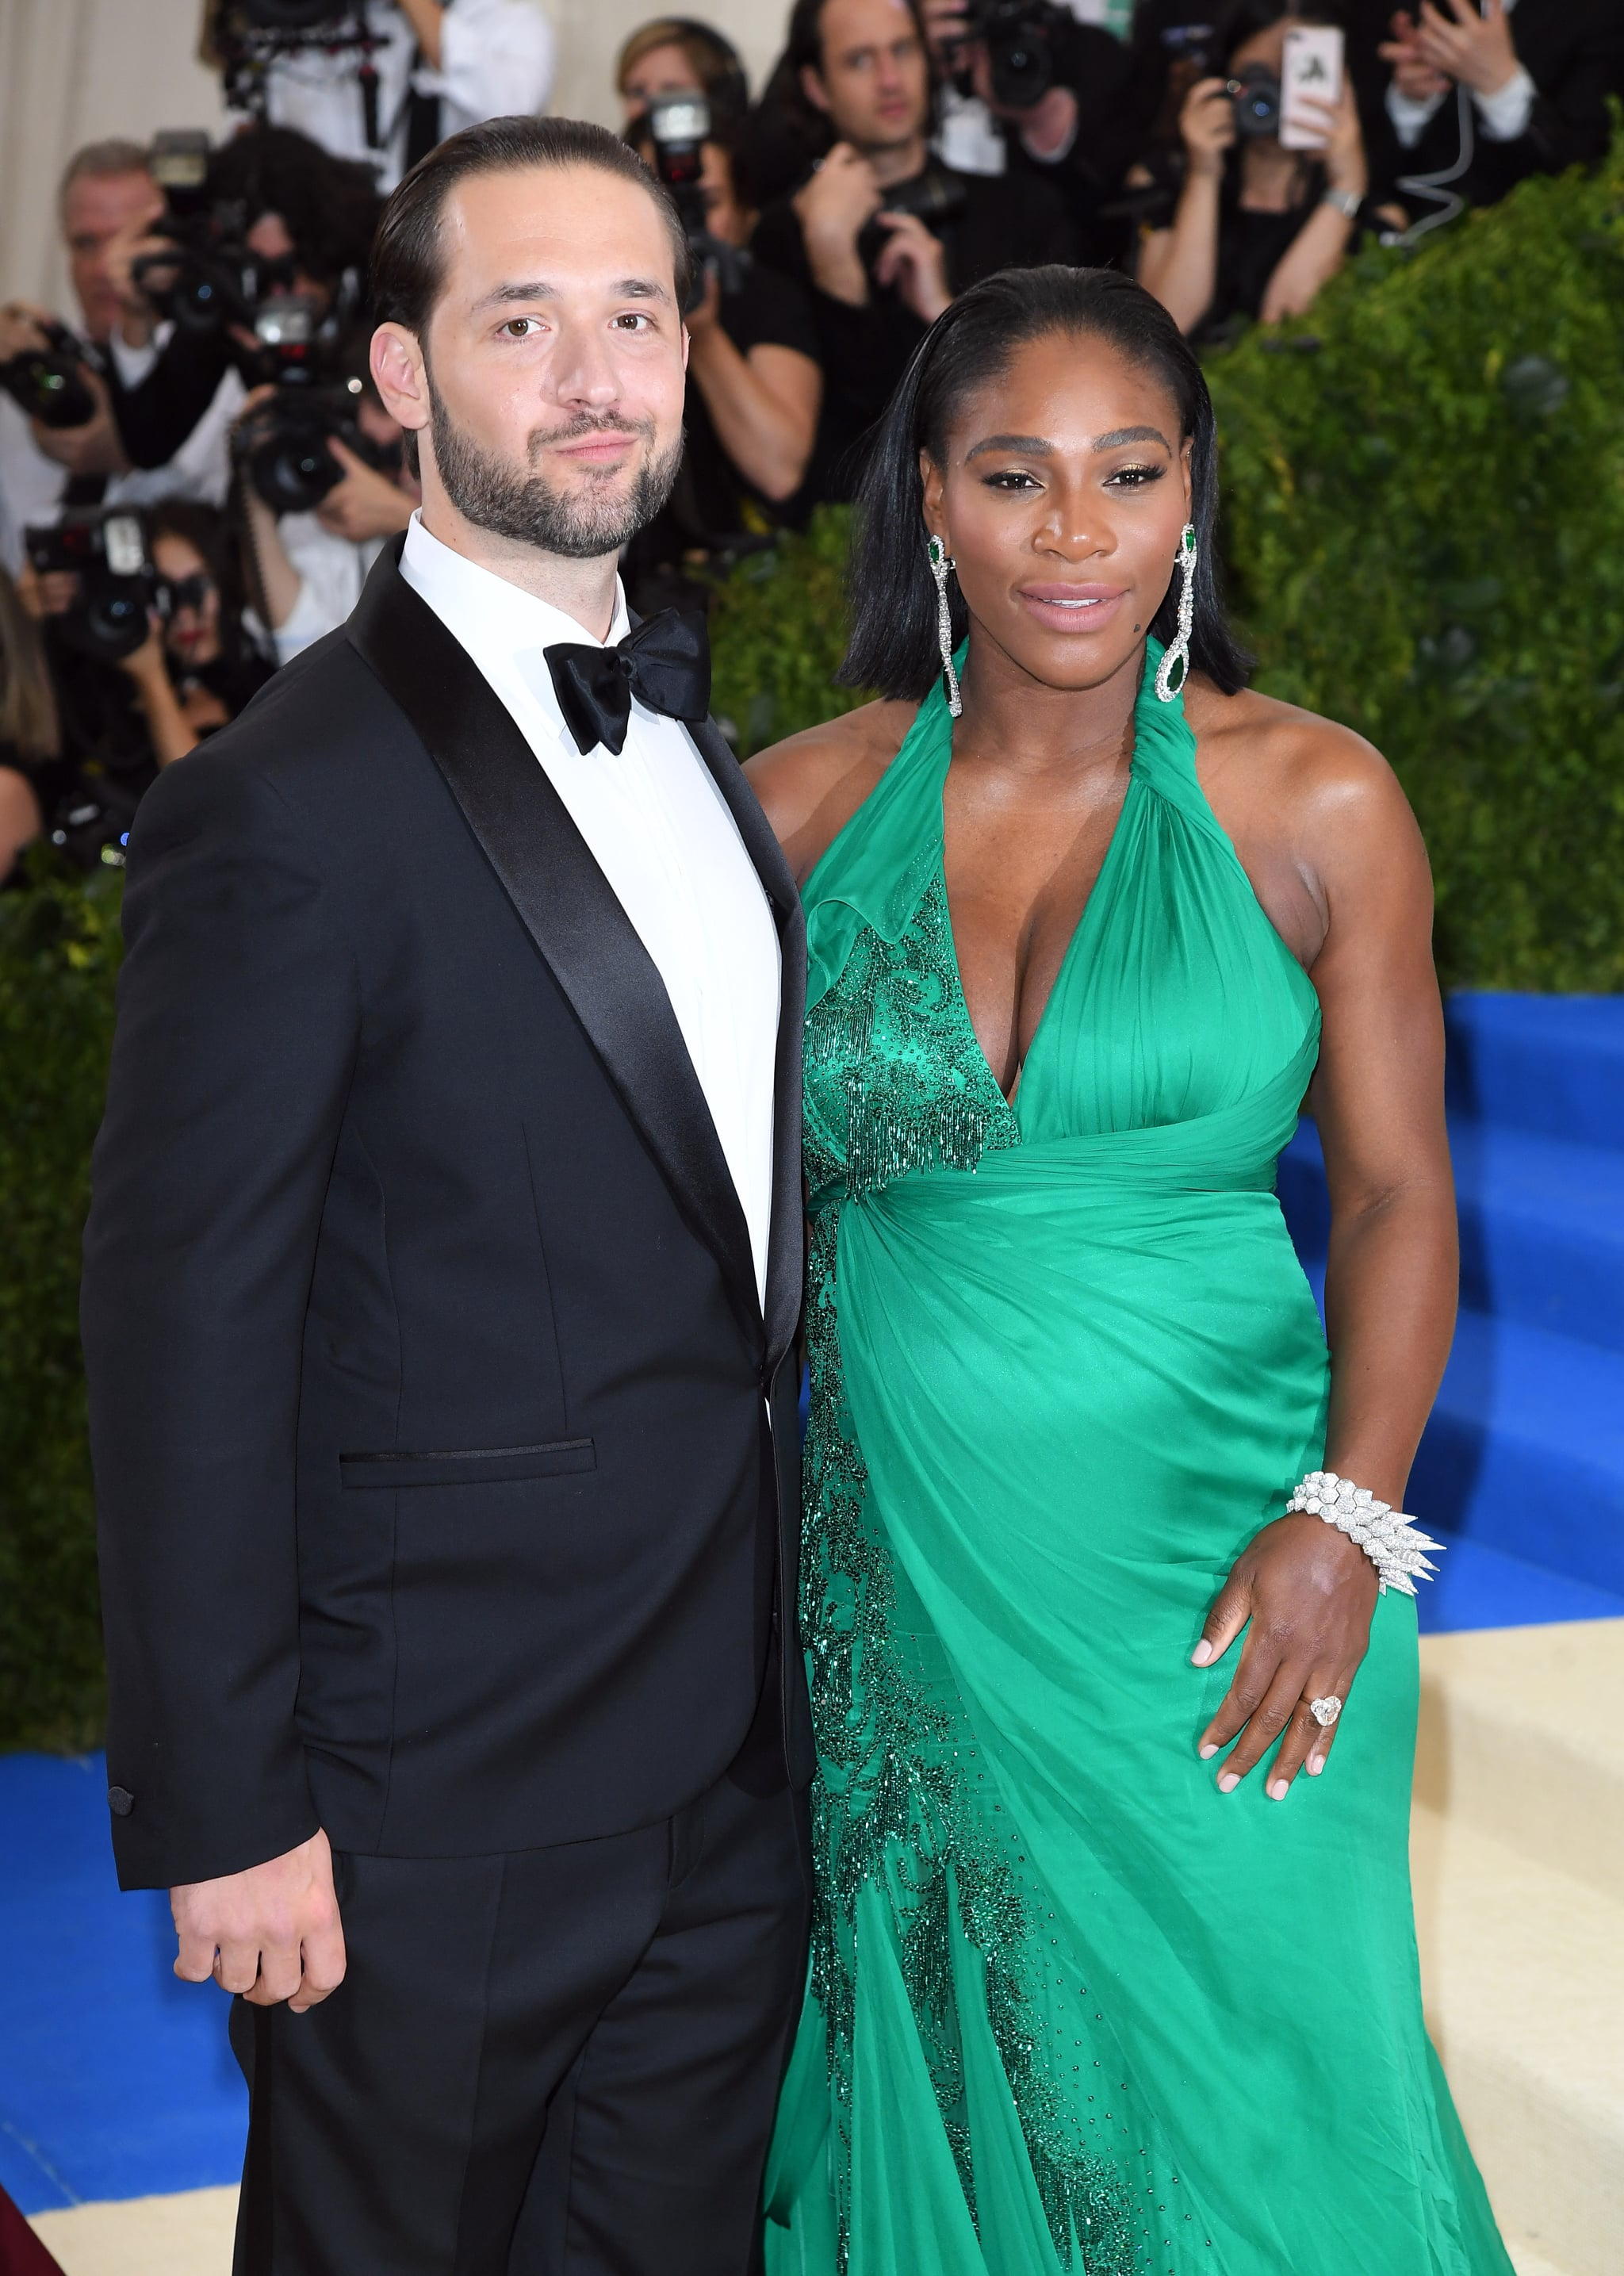 How did serena williams and alexis ohanian meet popsugar celebrity share this link kristyandbryce Choice Image